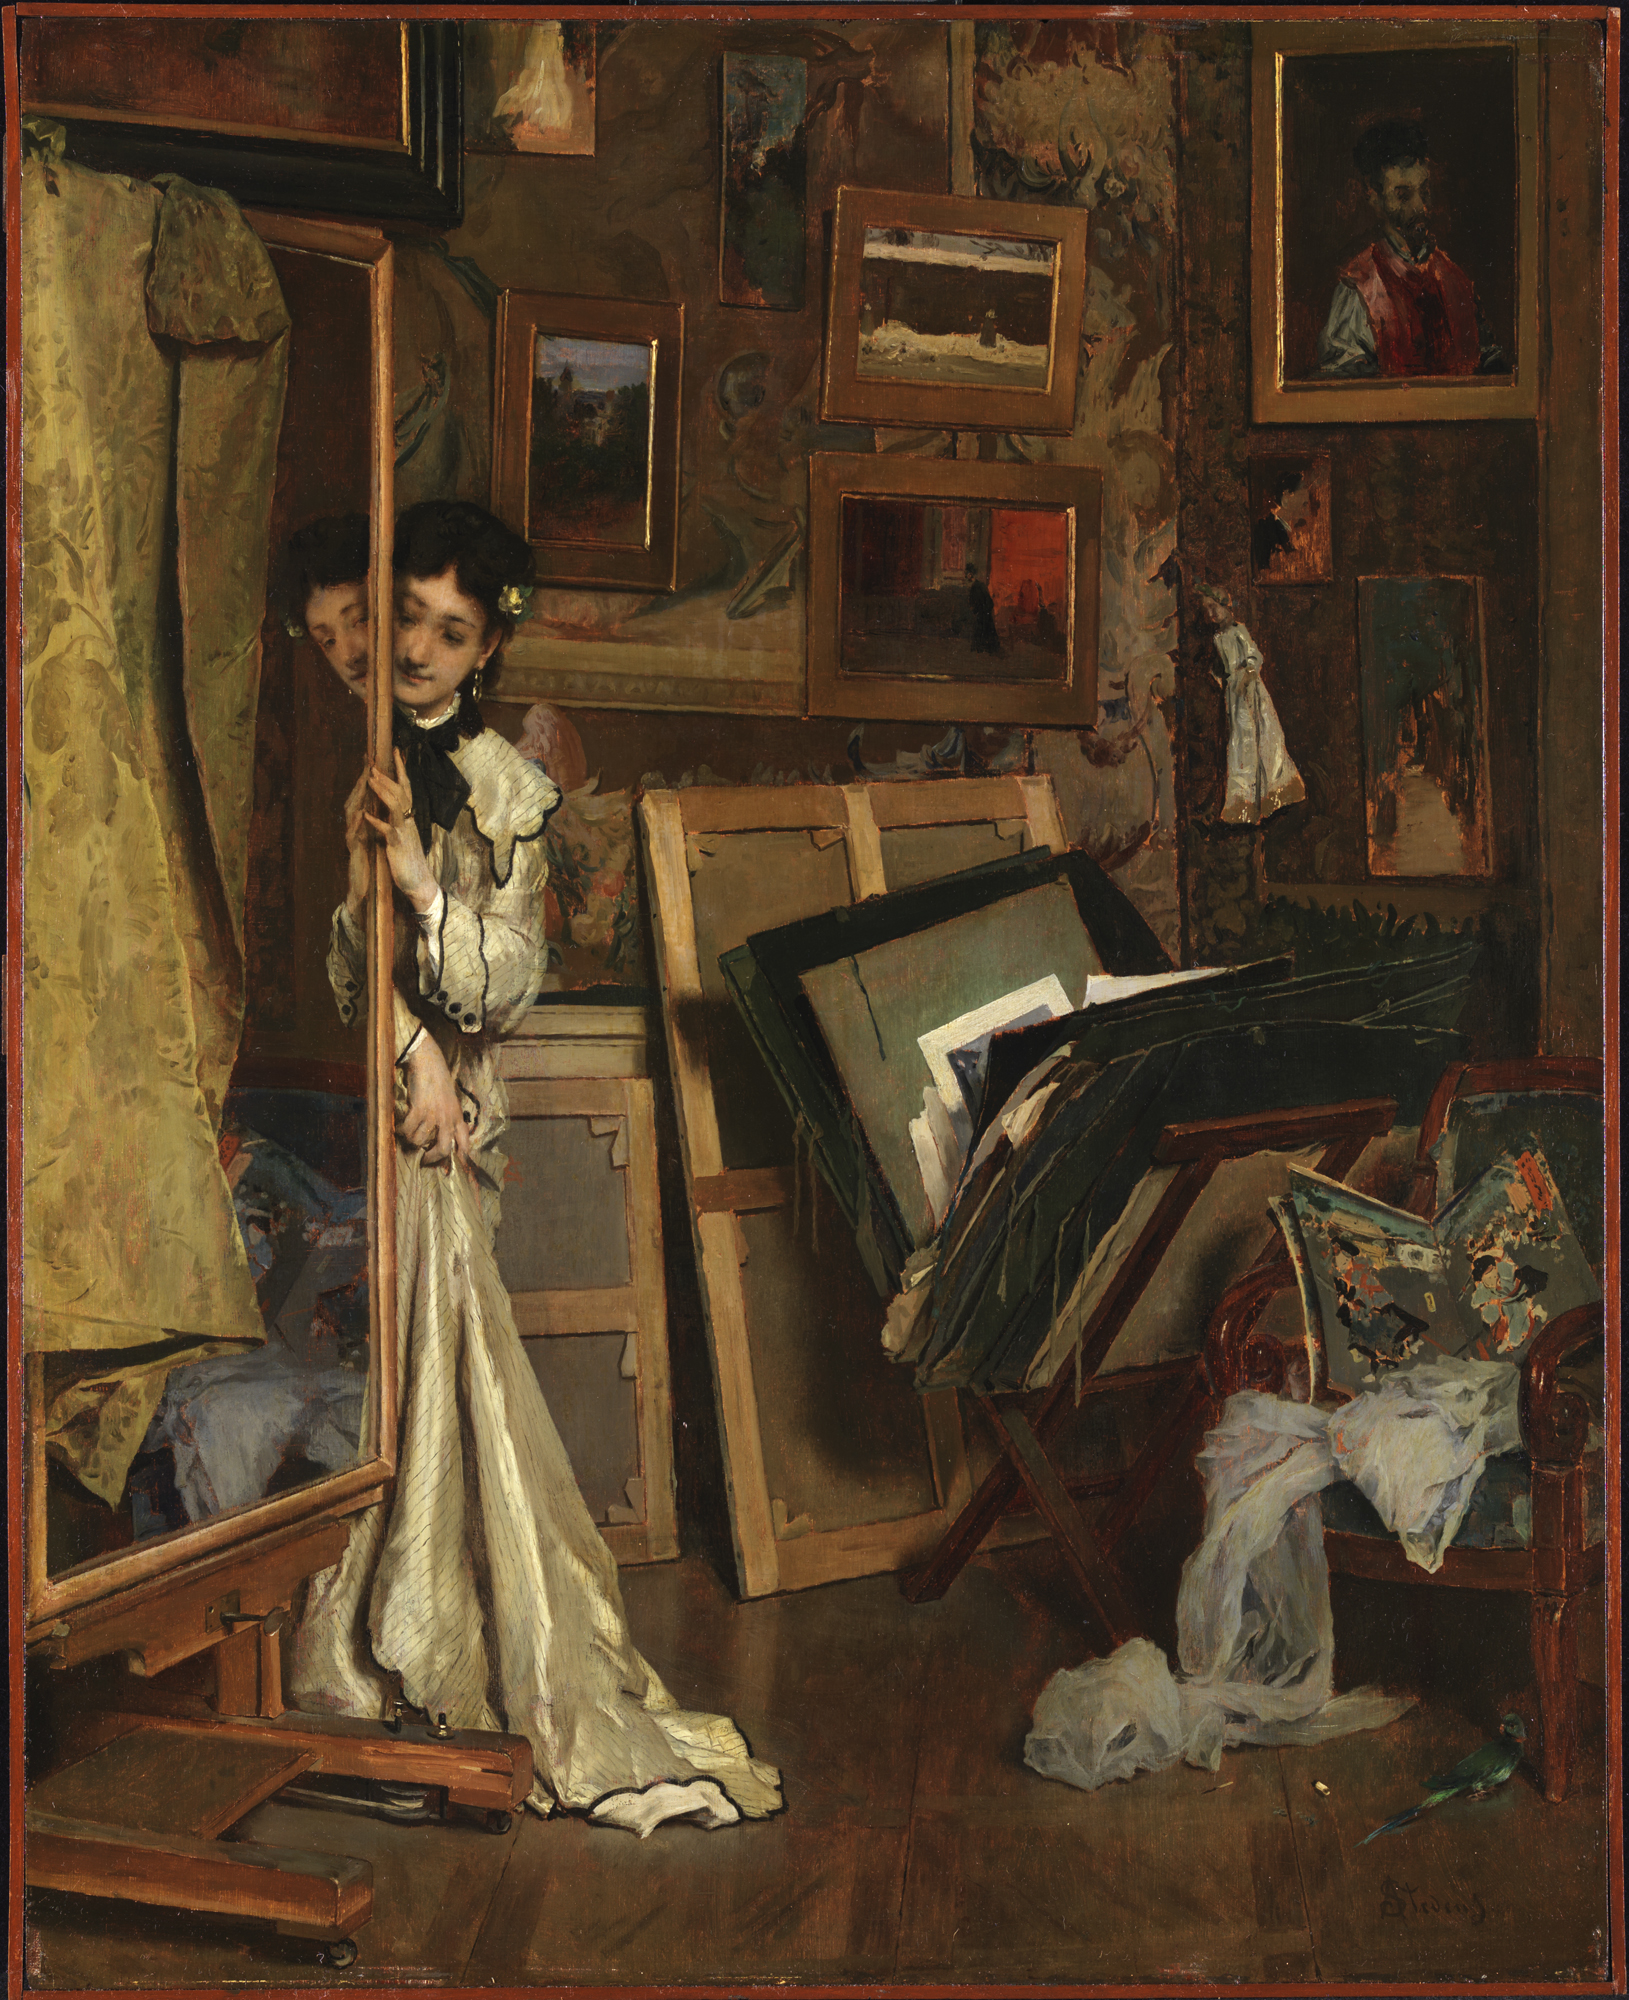 Alfred Stevens, Belgian, 1823–1906: La Psyché (My Studio), ca. 1870. Oil on panel, 73.7 x 59.1 cm. Museum purchase, Fowler McCormick, Class of 1921, Fund (2012-76). Photo: Bruce M. White